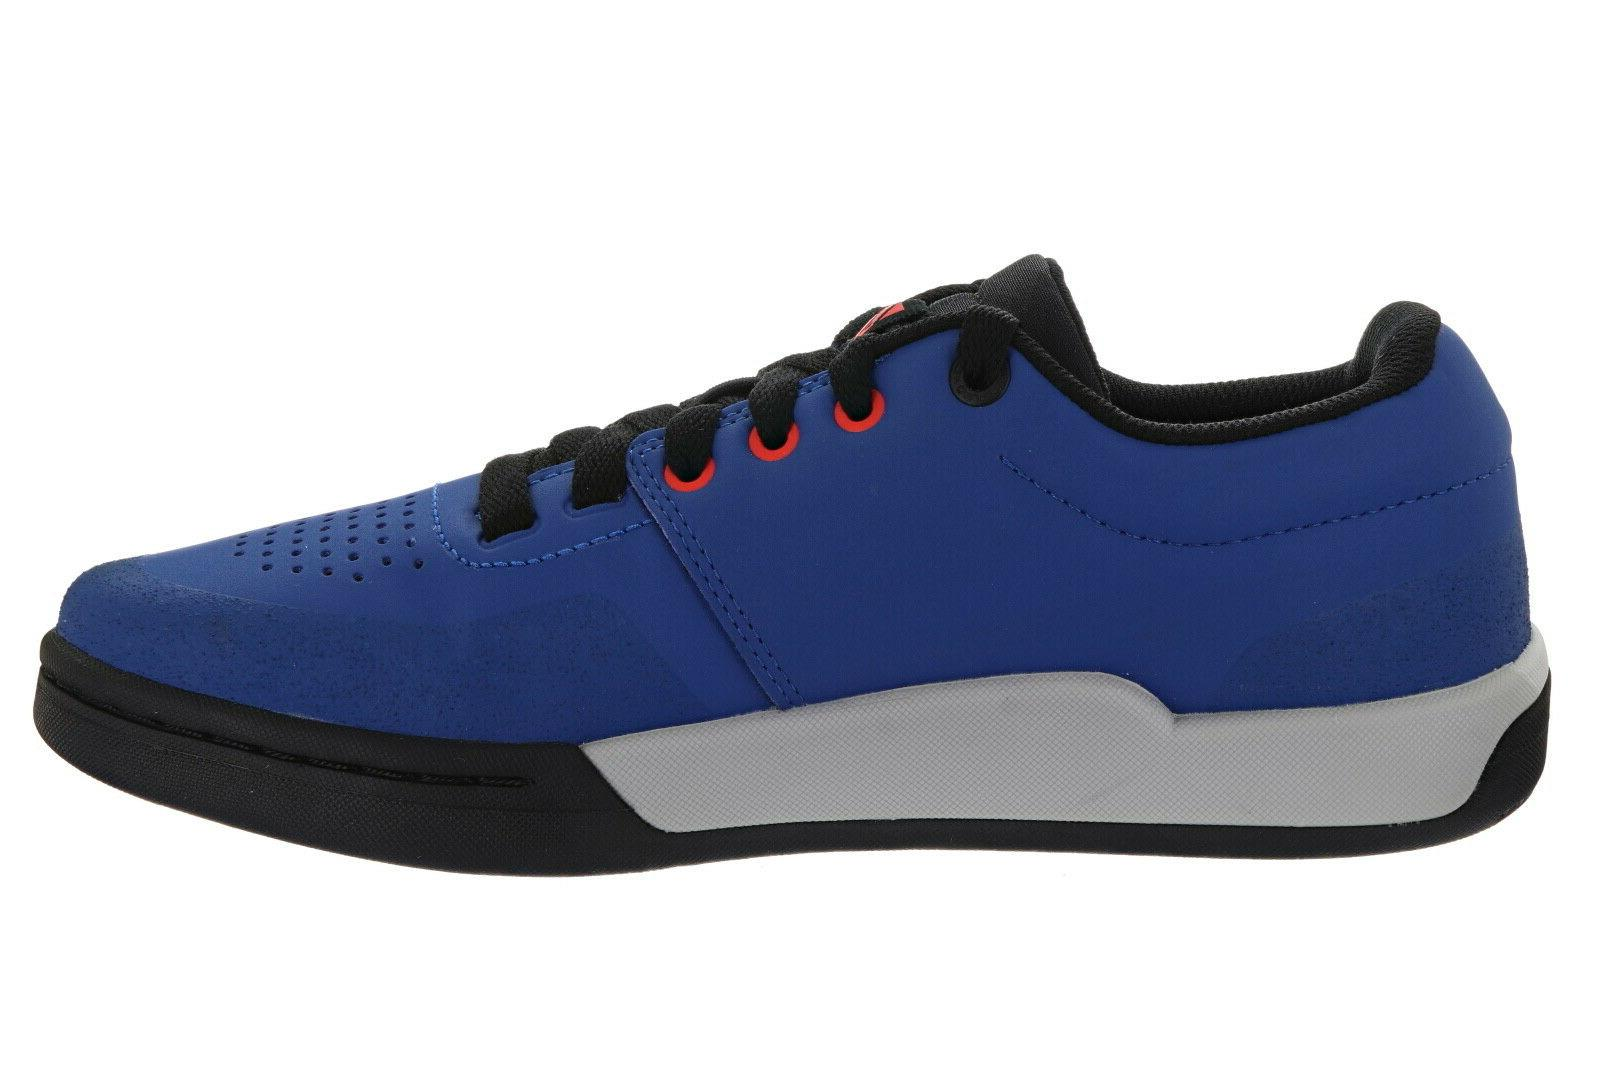 Five Ten Pro By Adidas 9 Athletic Bike Shoes